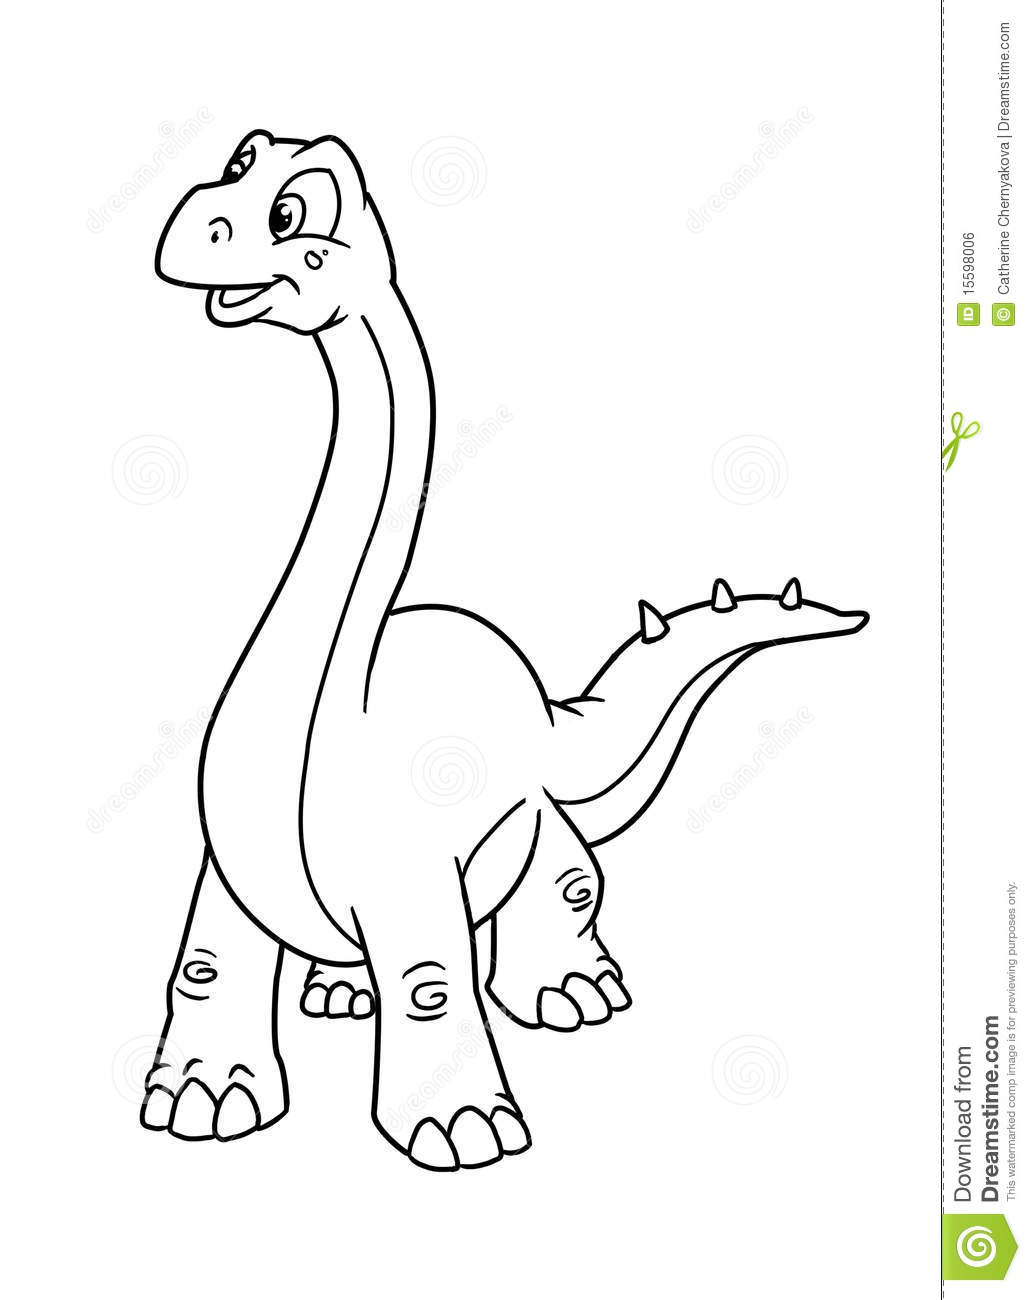 Coloring pages dinosaur stock illustration. Illustration of period ...